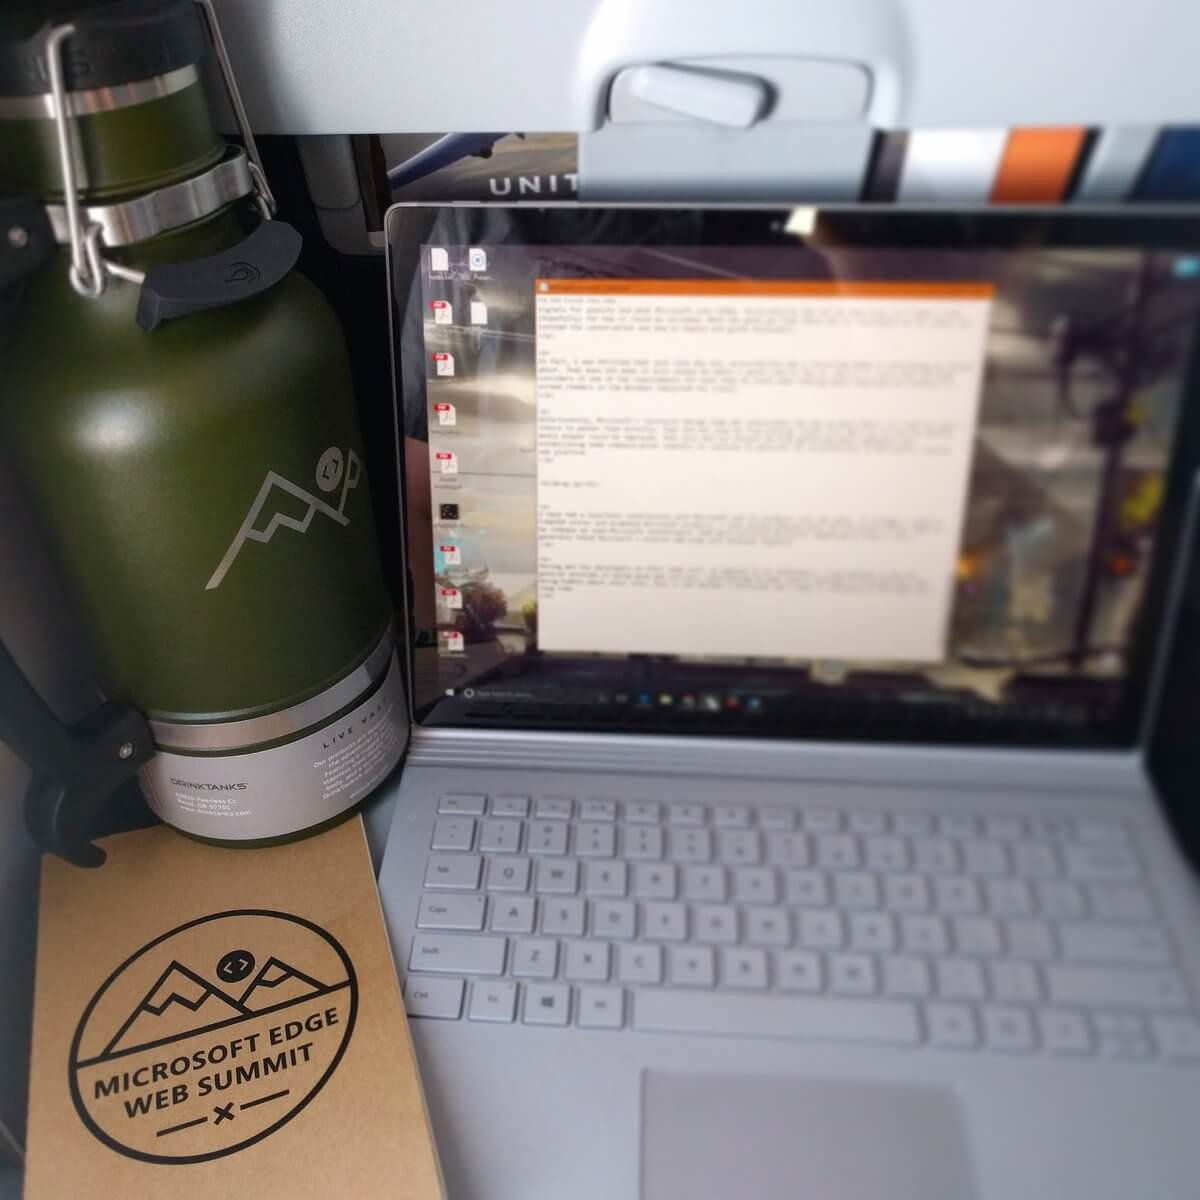 My laptop on the airplane tray table along with the free 'Microsoft Edge Web Summit' branded Moleskine. Crowding them both off the tray a bit and jammed up against the bulkhead is the giant insulated 64oz drink container, also emblazoned with 'Microsoft Edge Web Summit'.